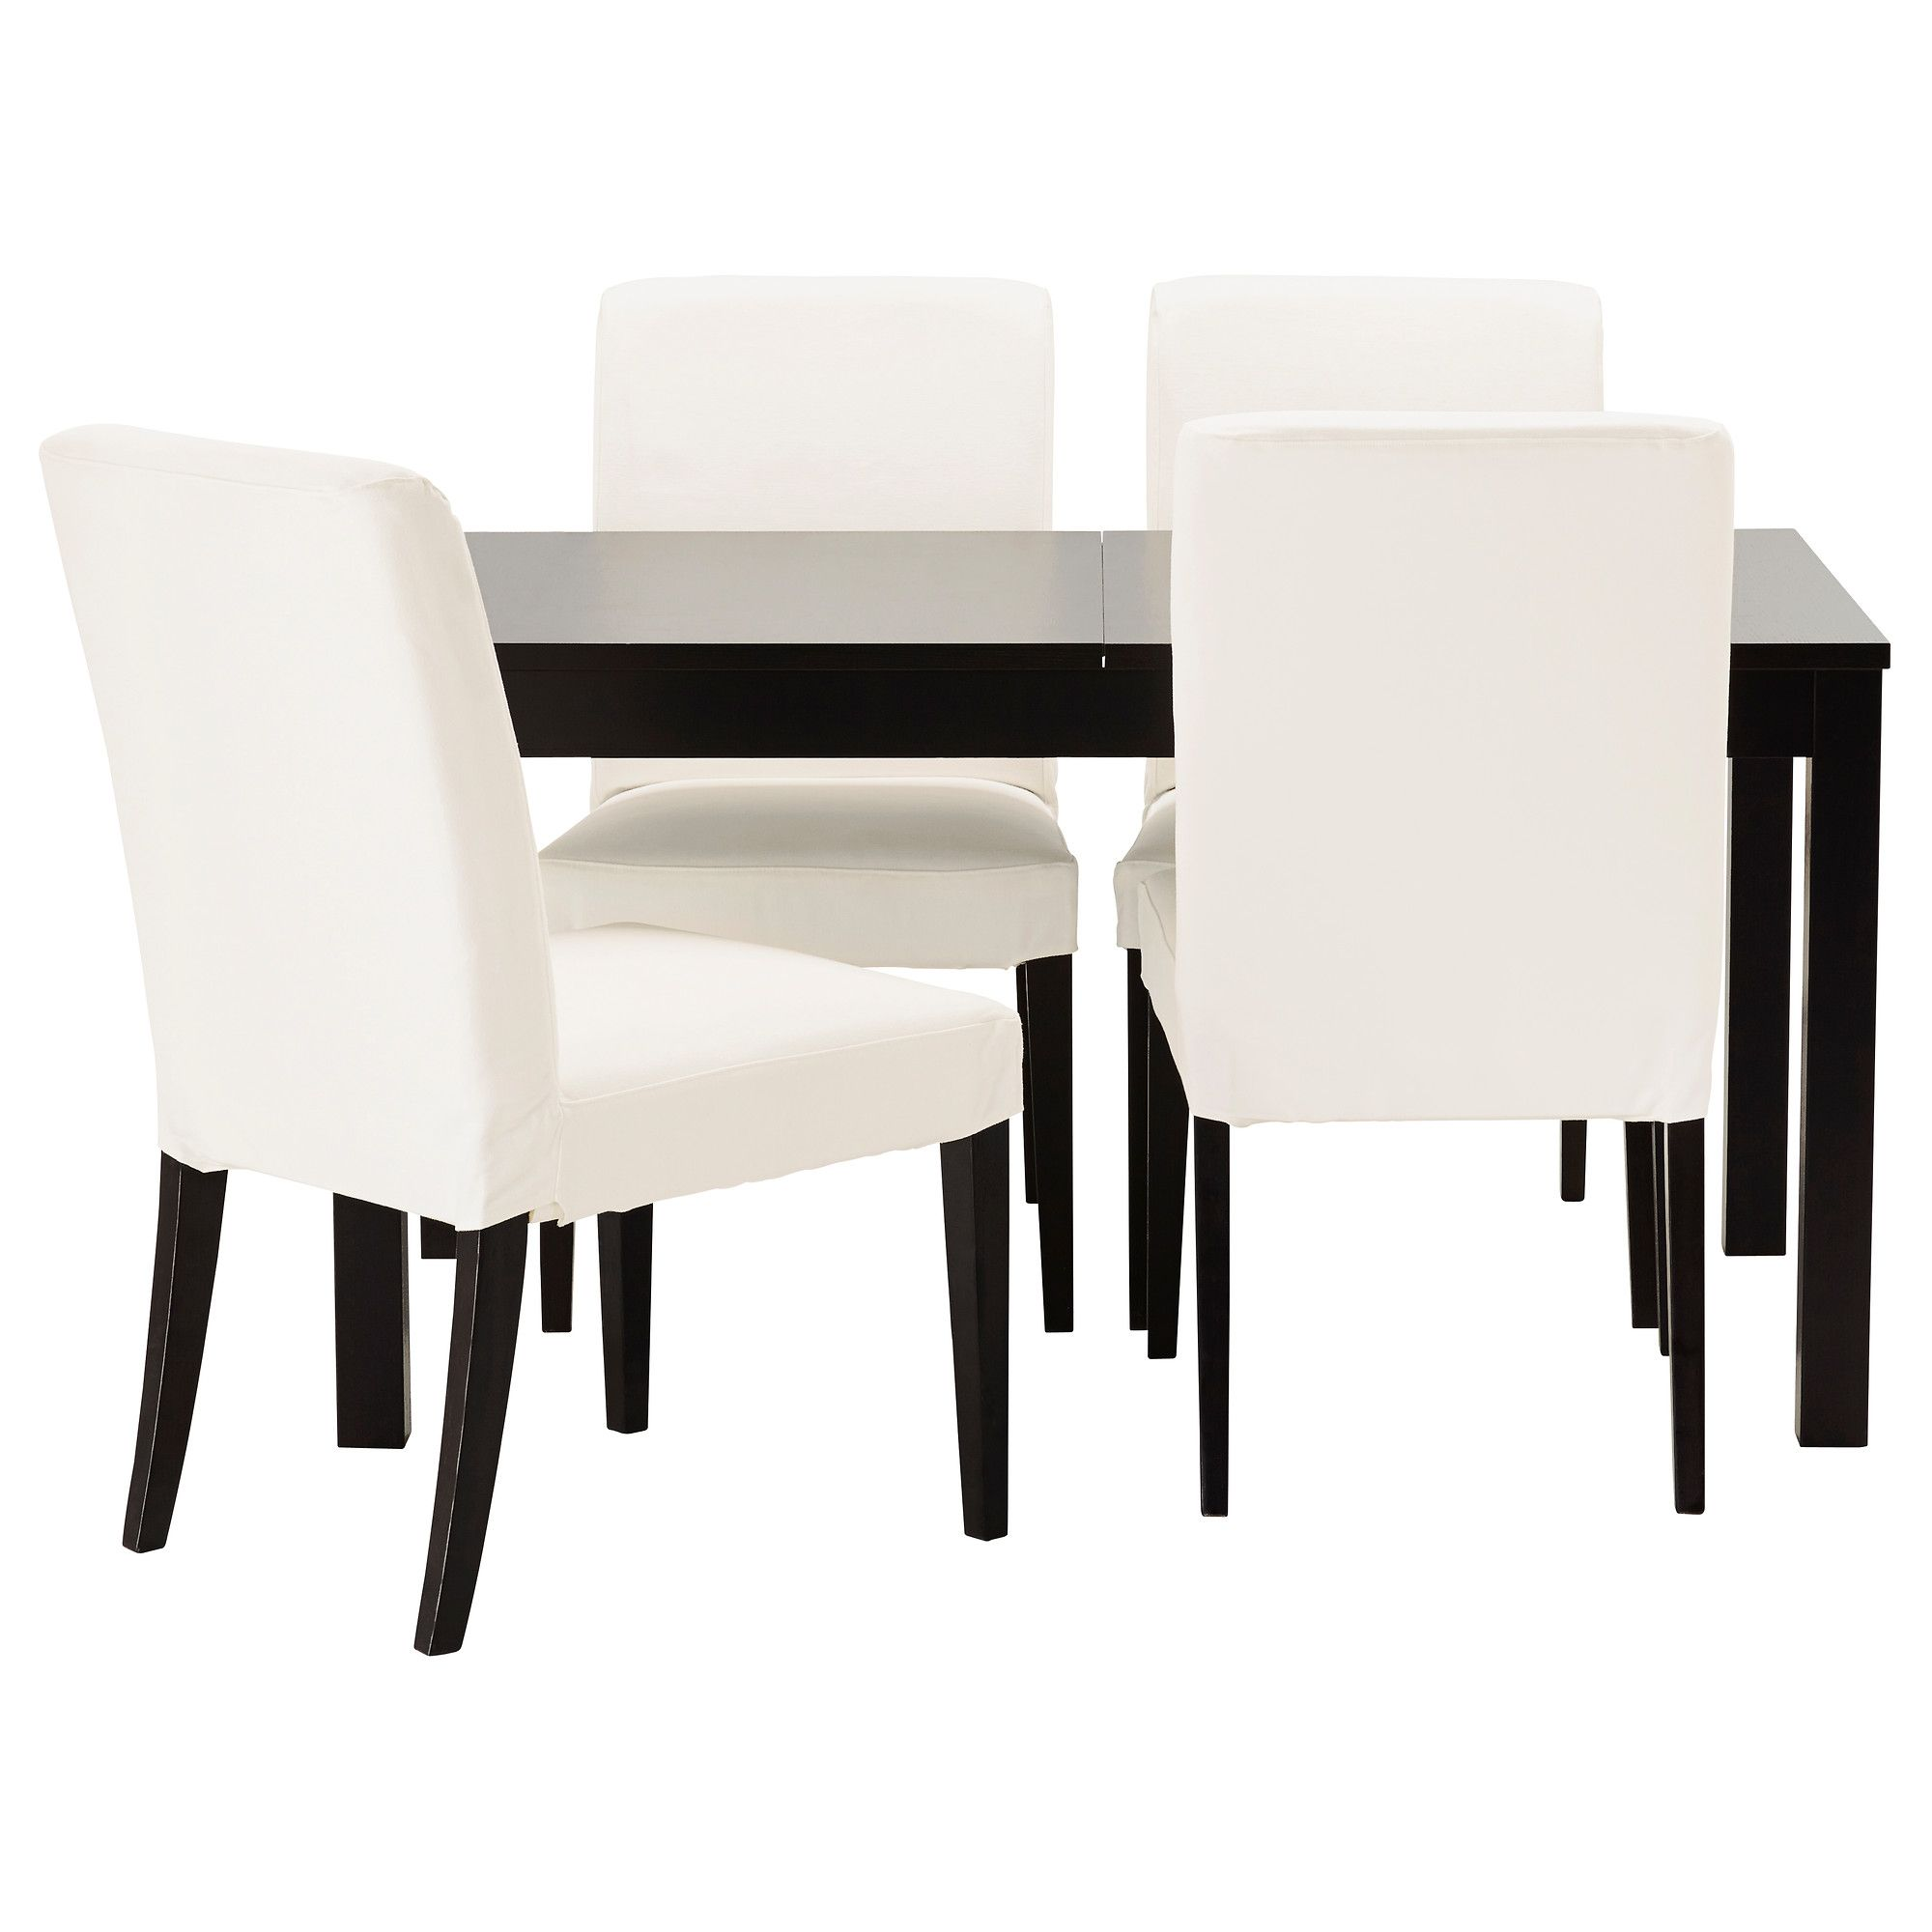 Bjursta Henriksdal Table And 4 Chairs Ikea Loving The